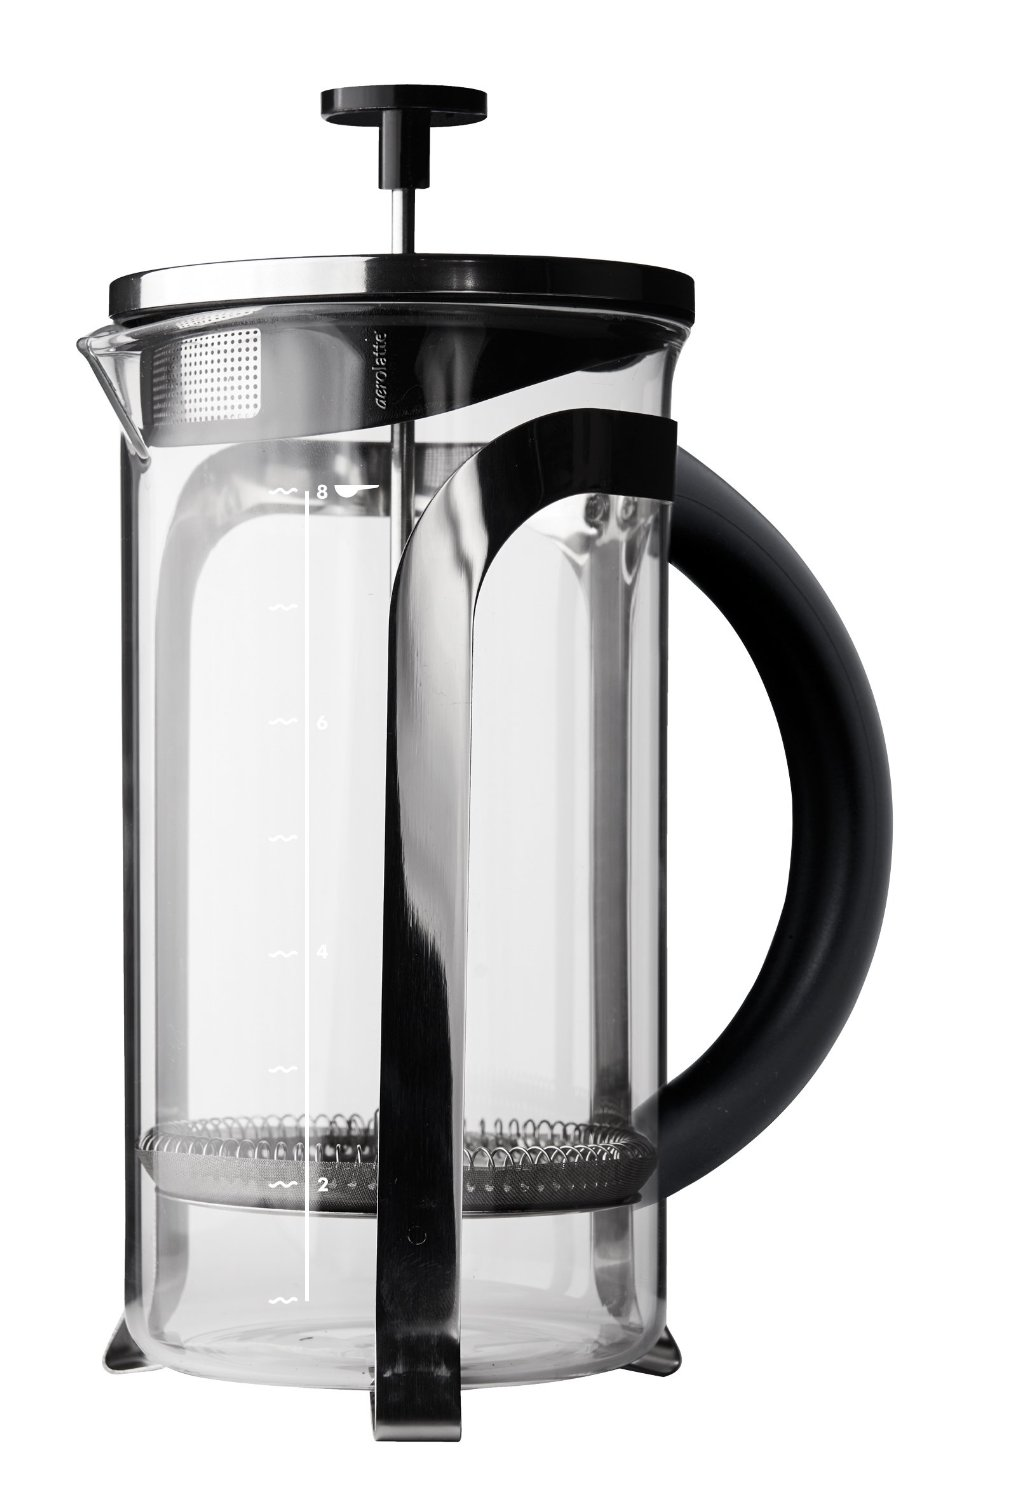 Aerolatte Coffee Press - Glass - 1 L